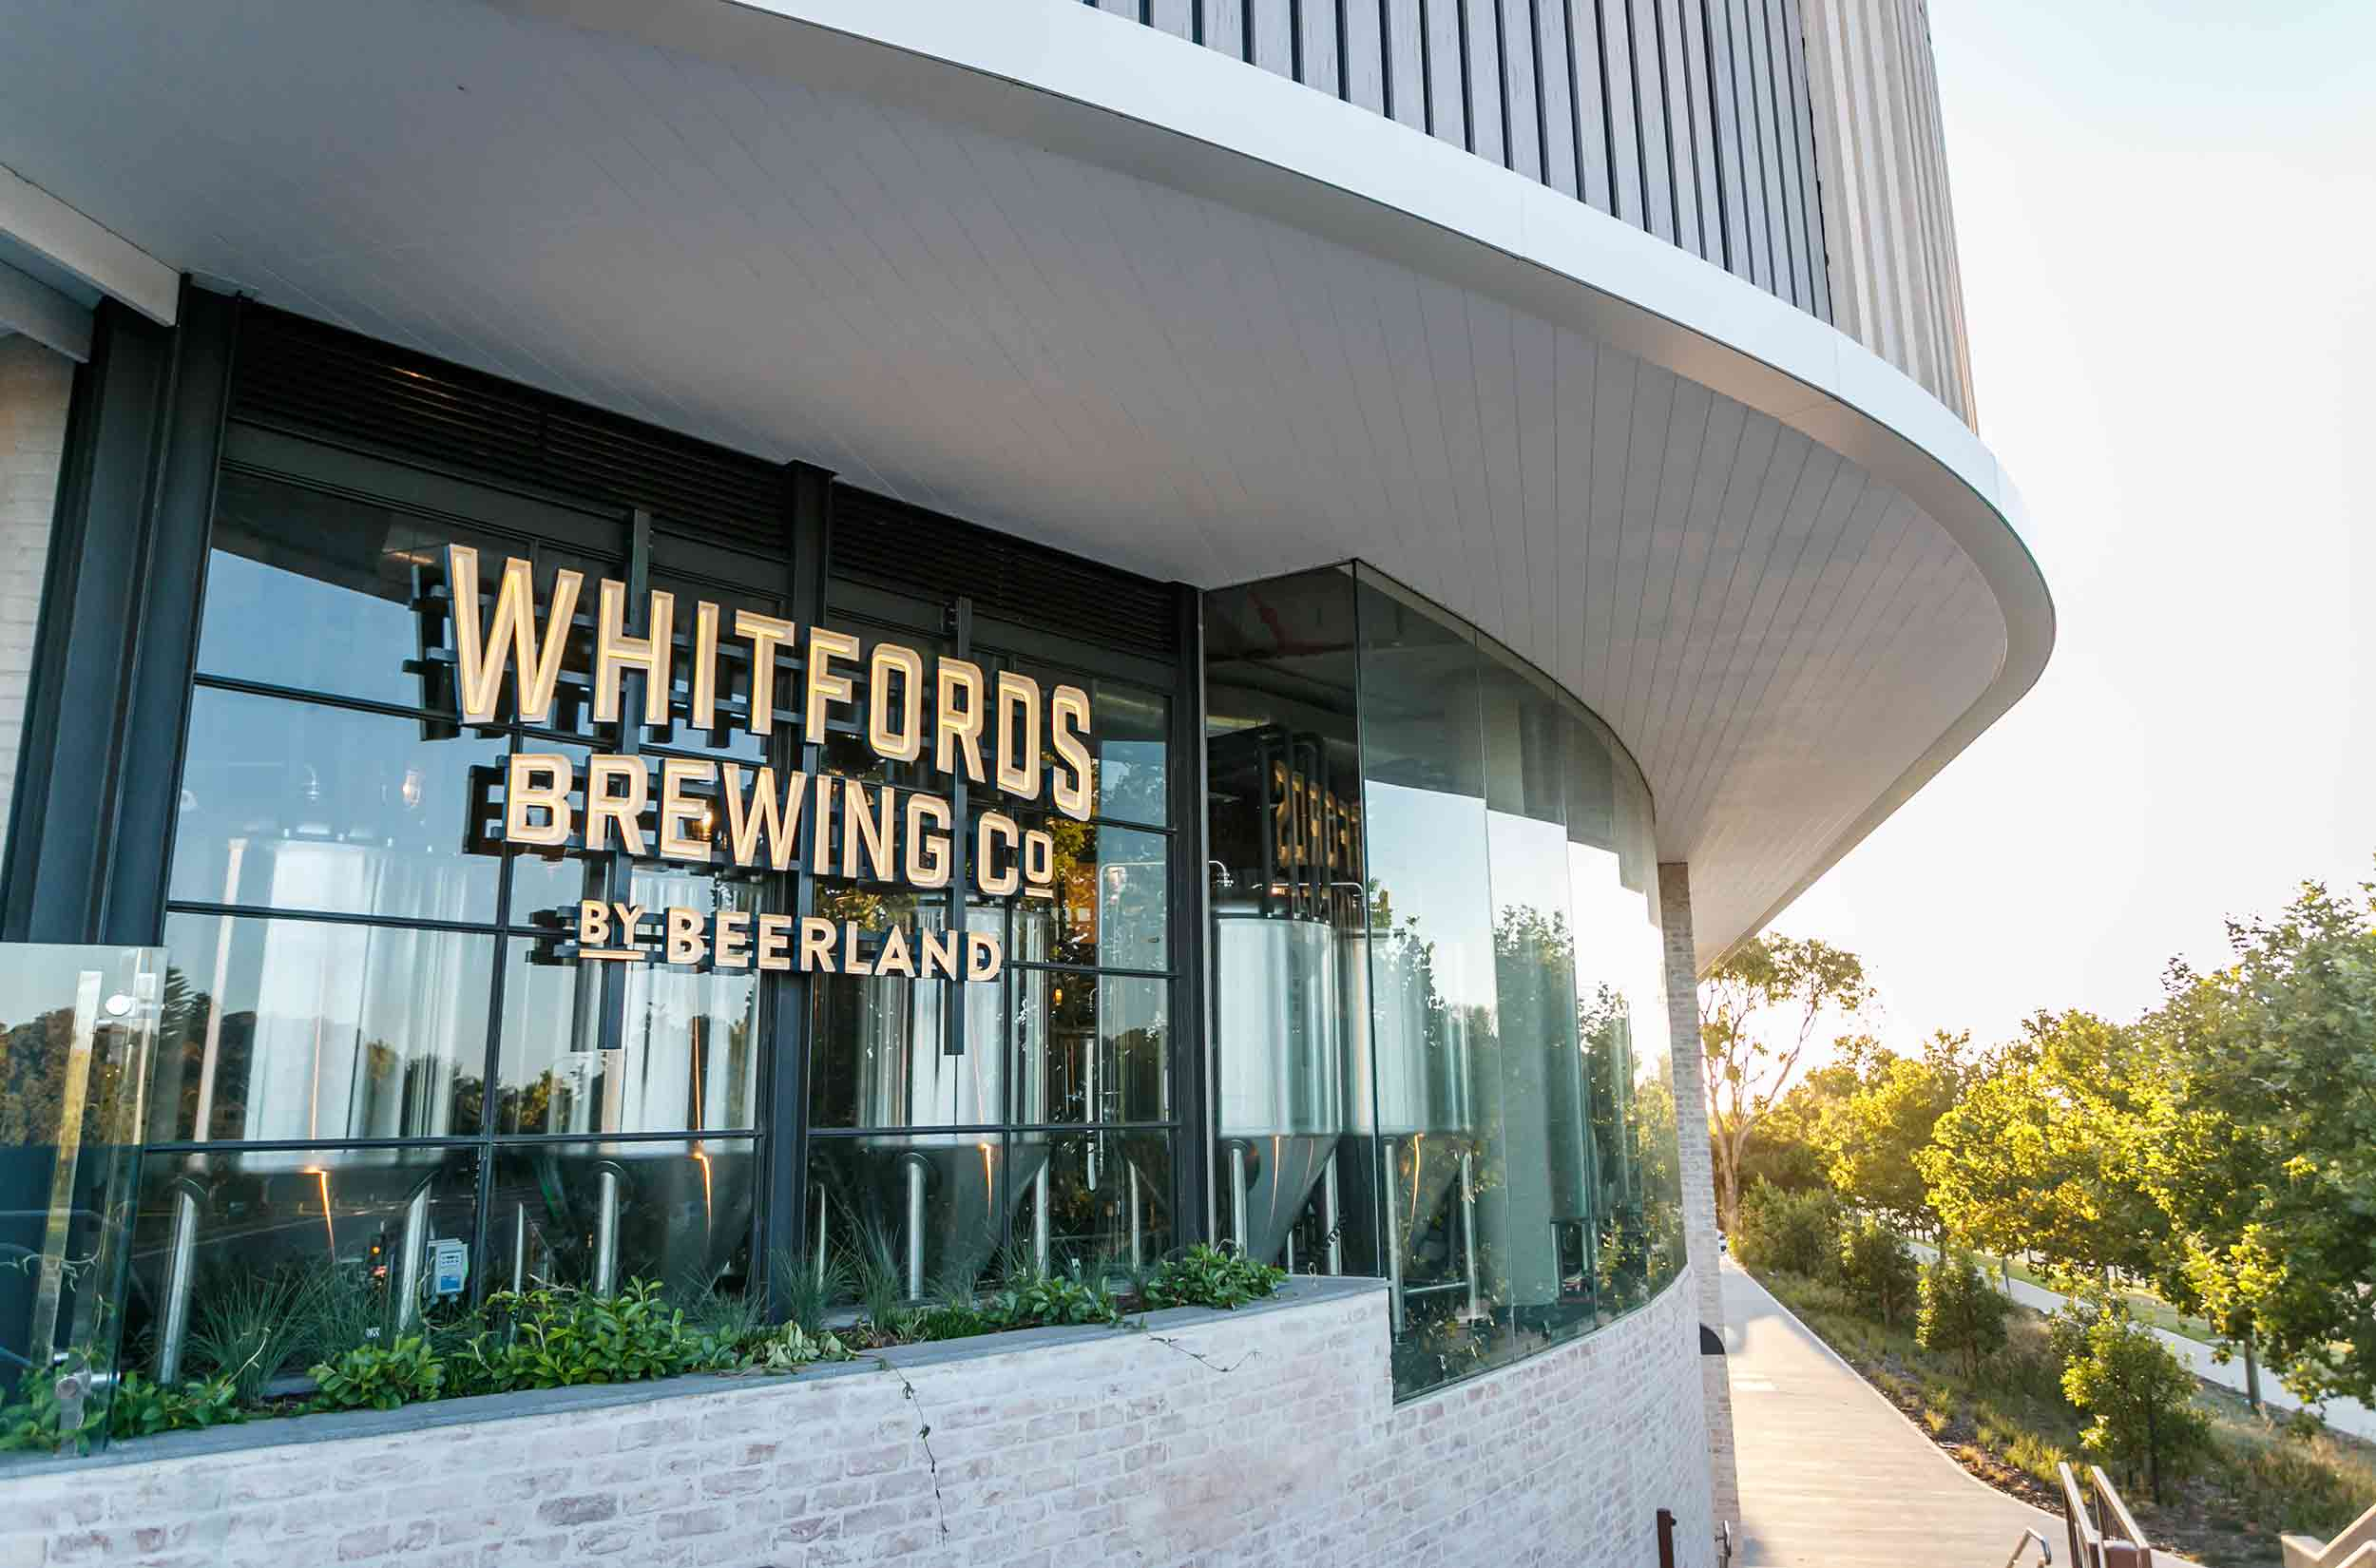 Whitfords Brewing Company Signage